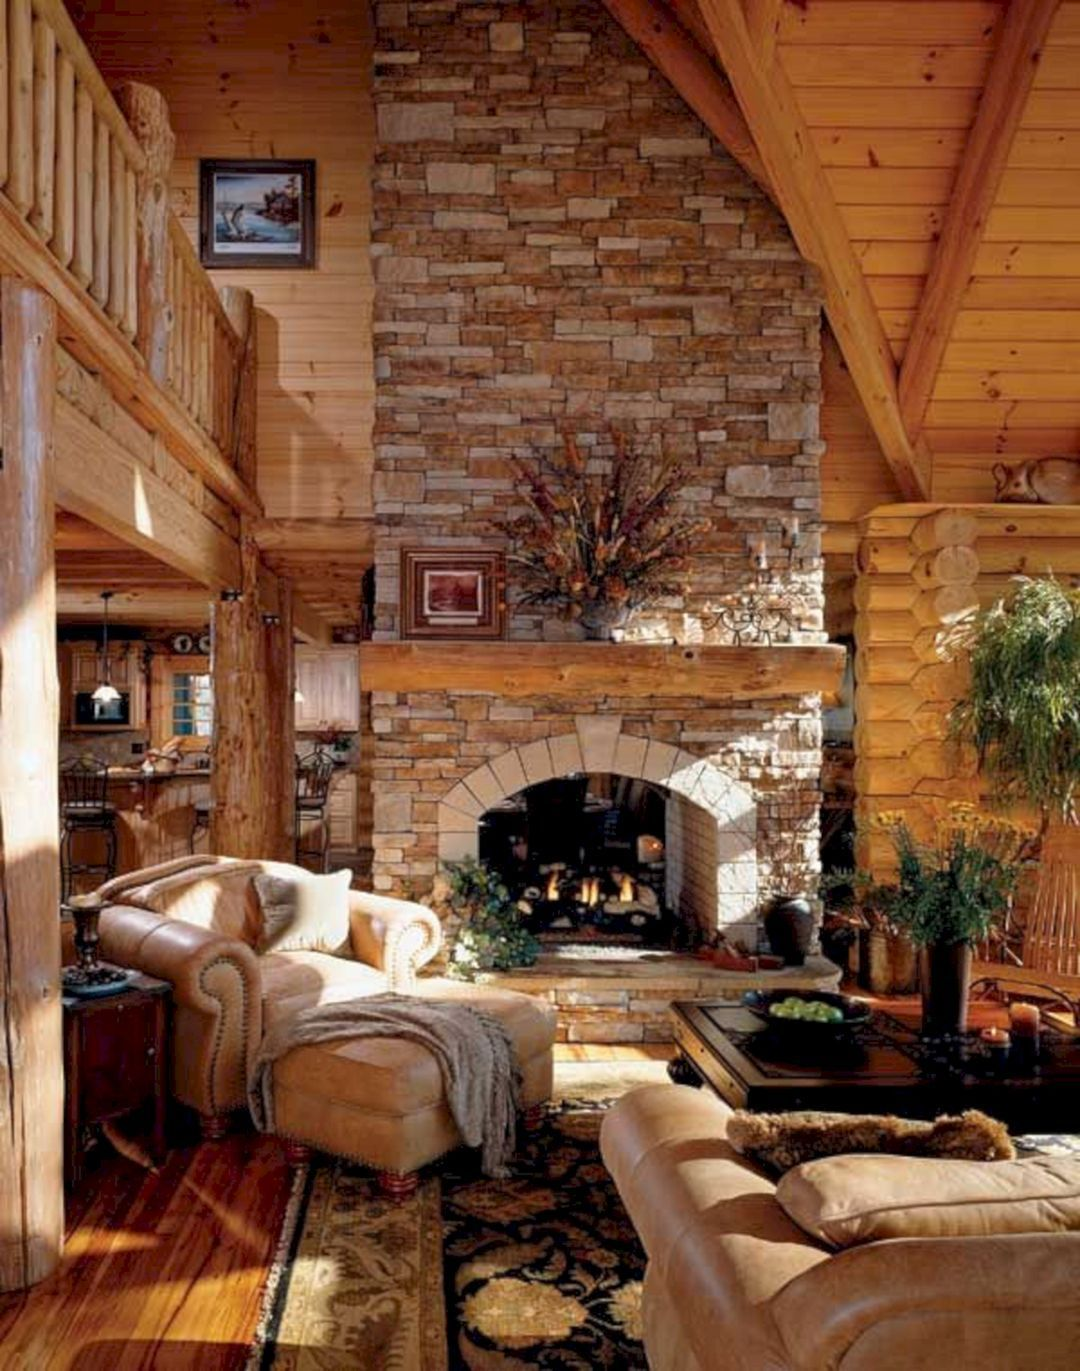 enchanting log cabin cozy living rooms | 49 Superb Cozy and Rustic Cabin Style Living Rooms Ideas ...